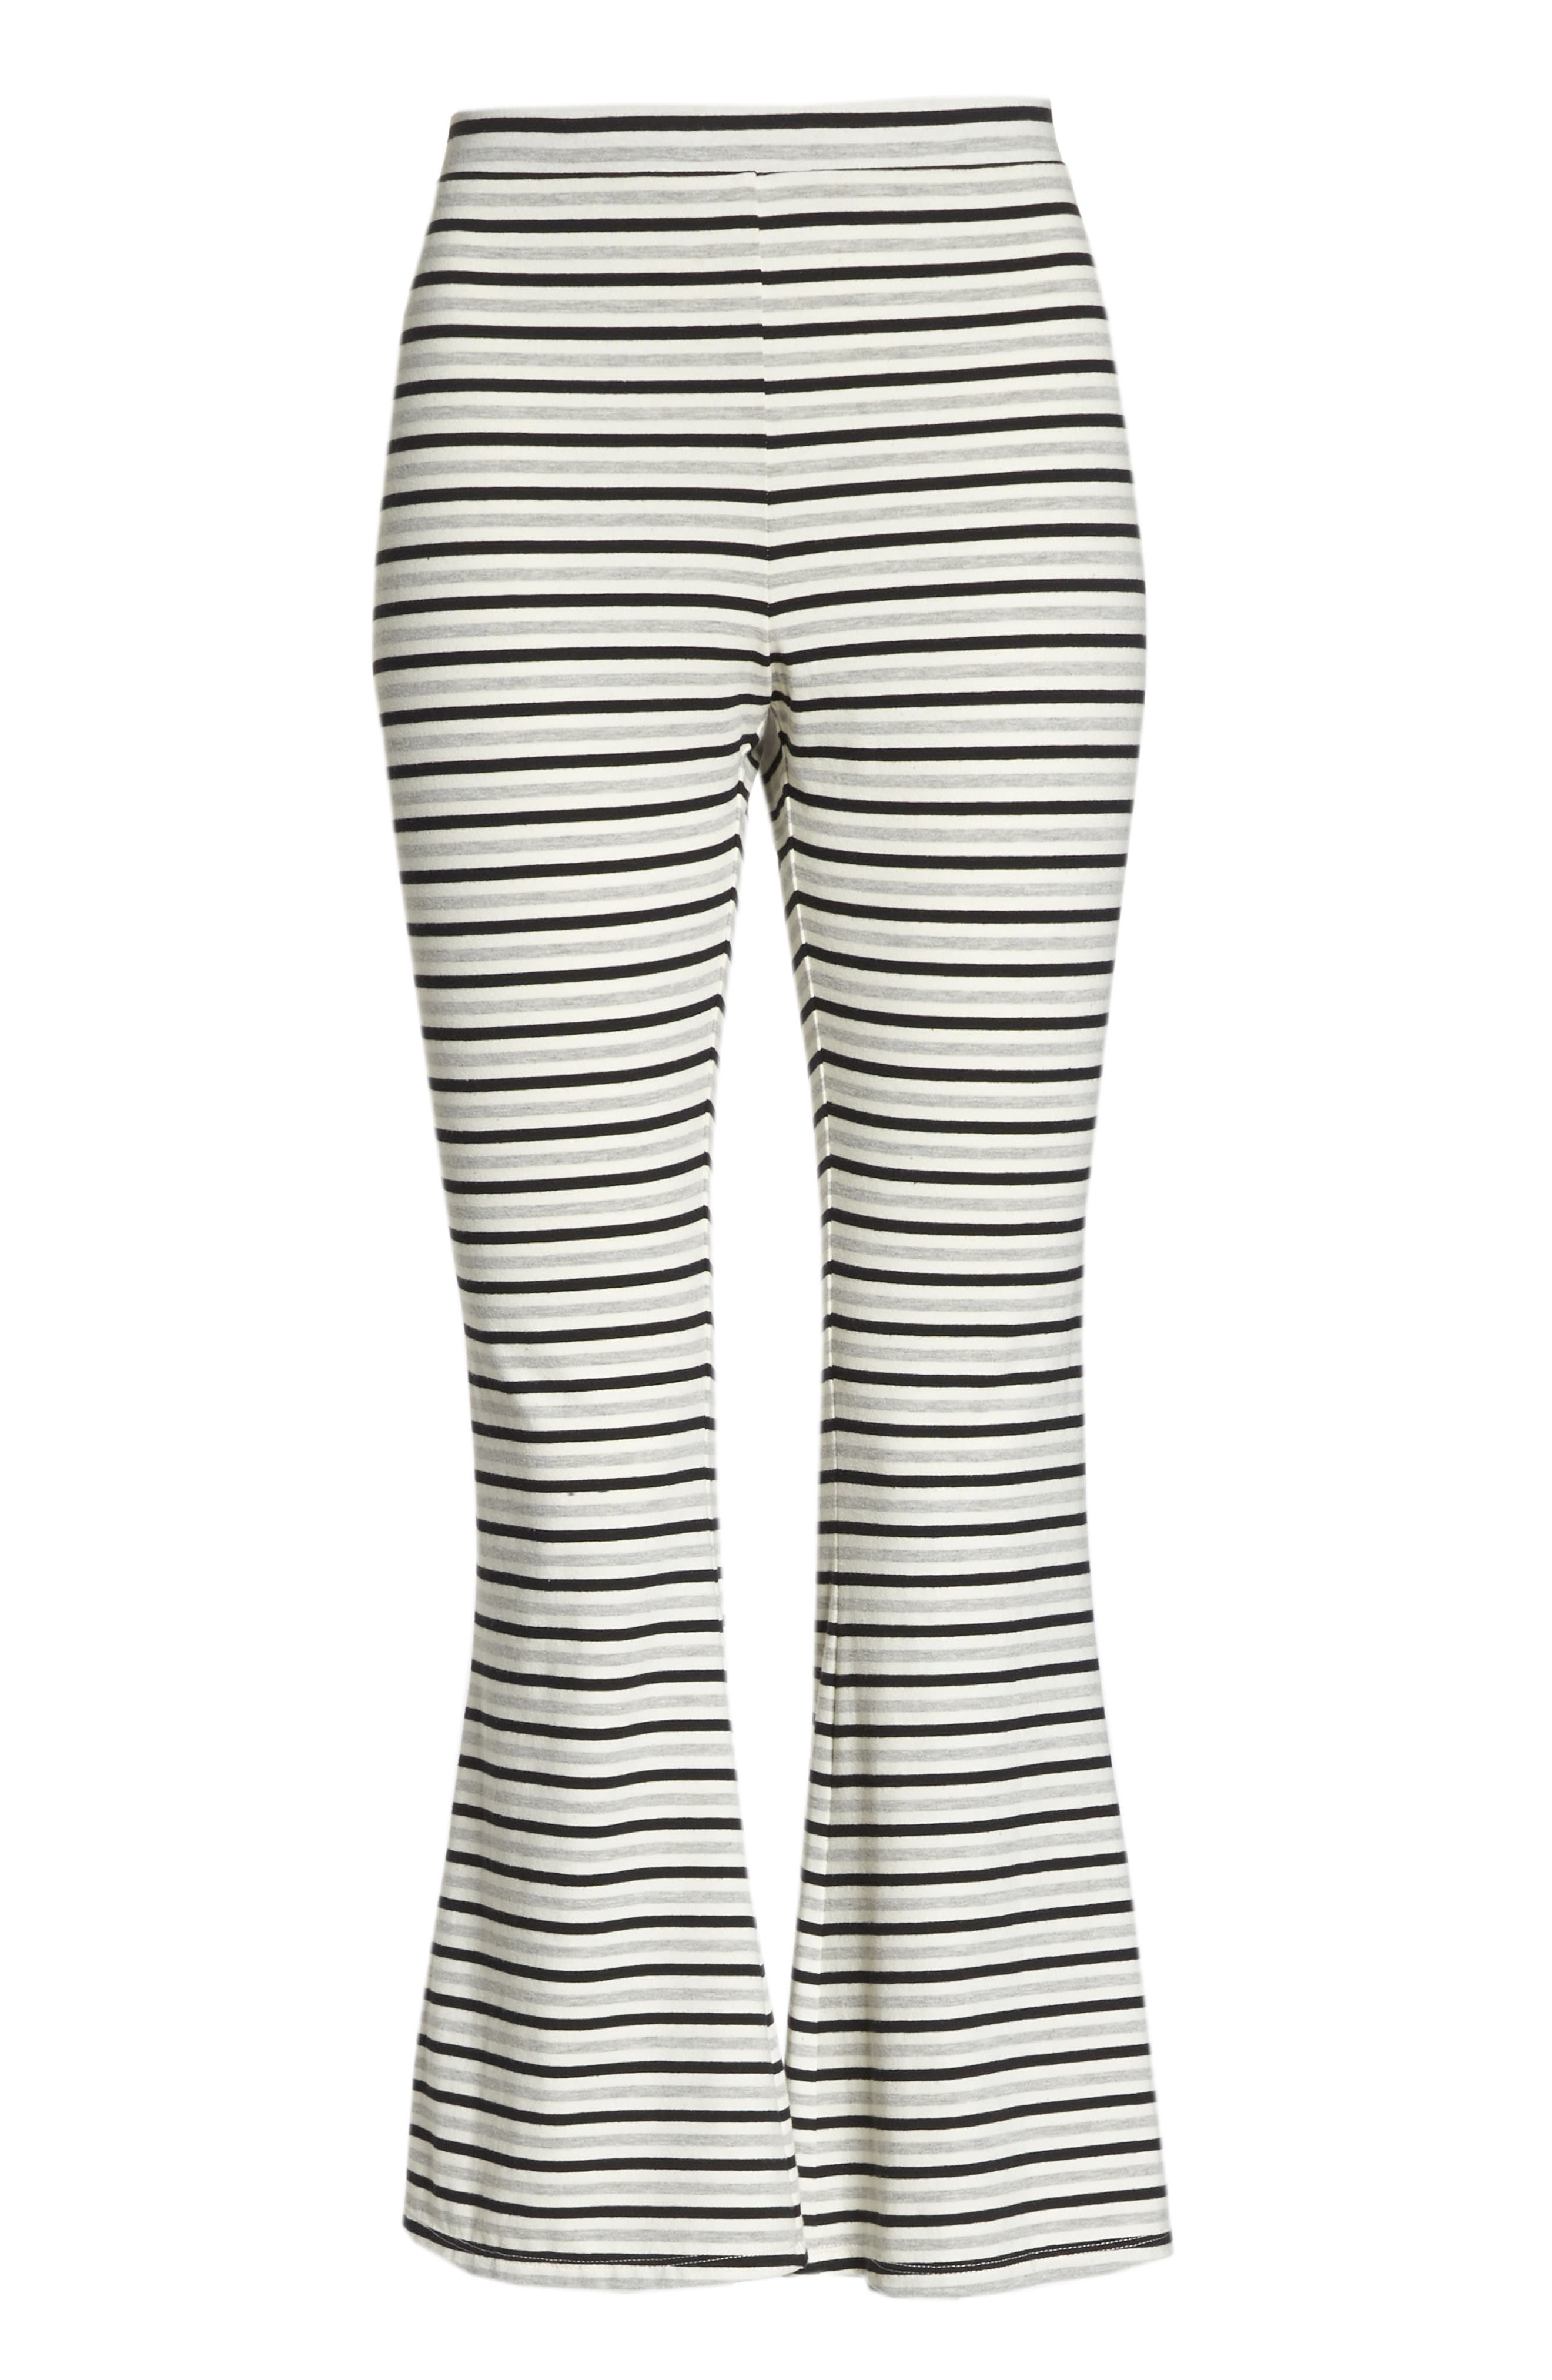 Flare for Drama Crop Lounge Pants,                             Alternate thumbnail 6, color,                             IVORY